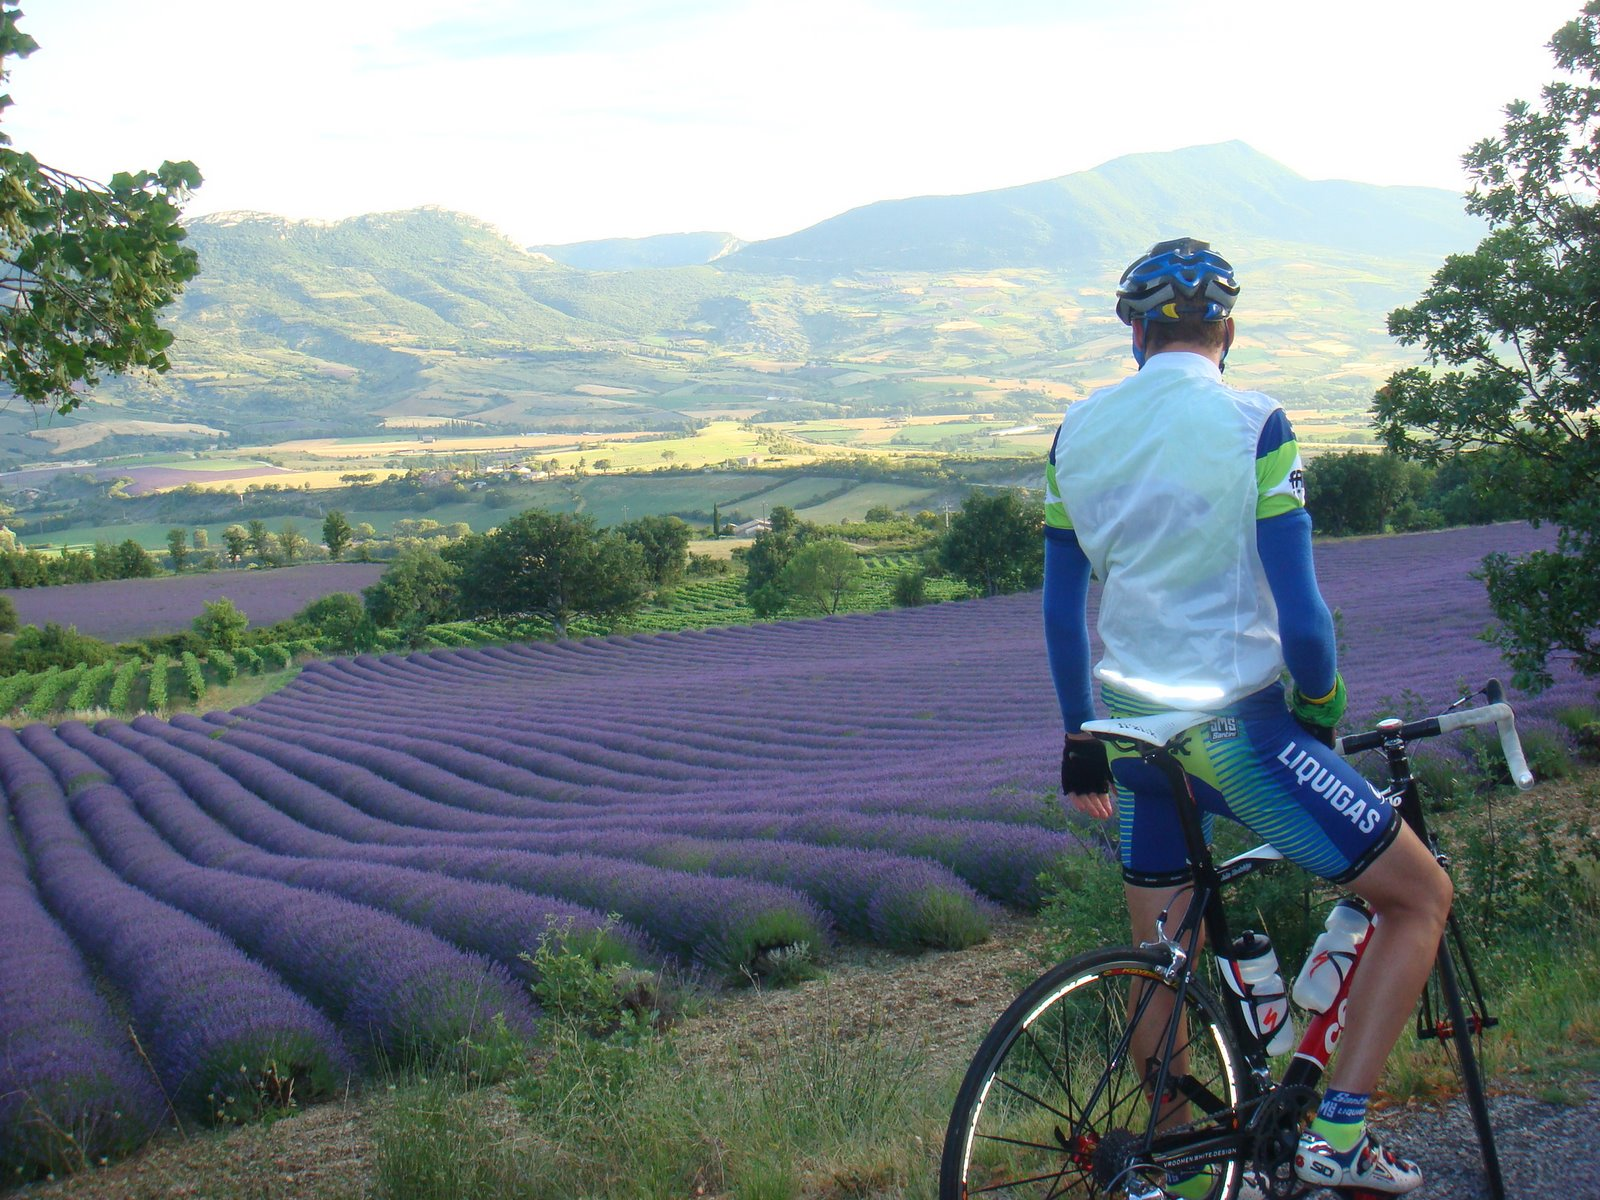 Cyclomundo rider looking upon the Lavender fields